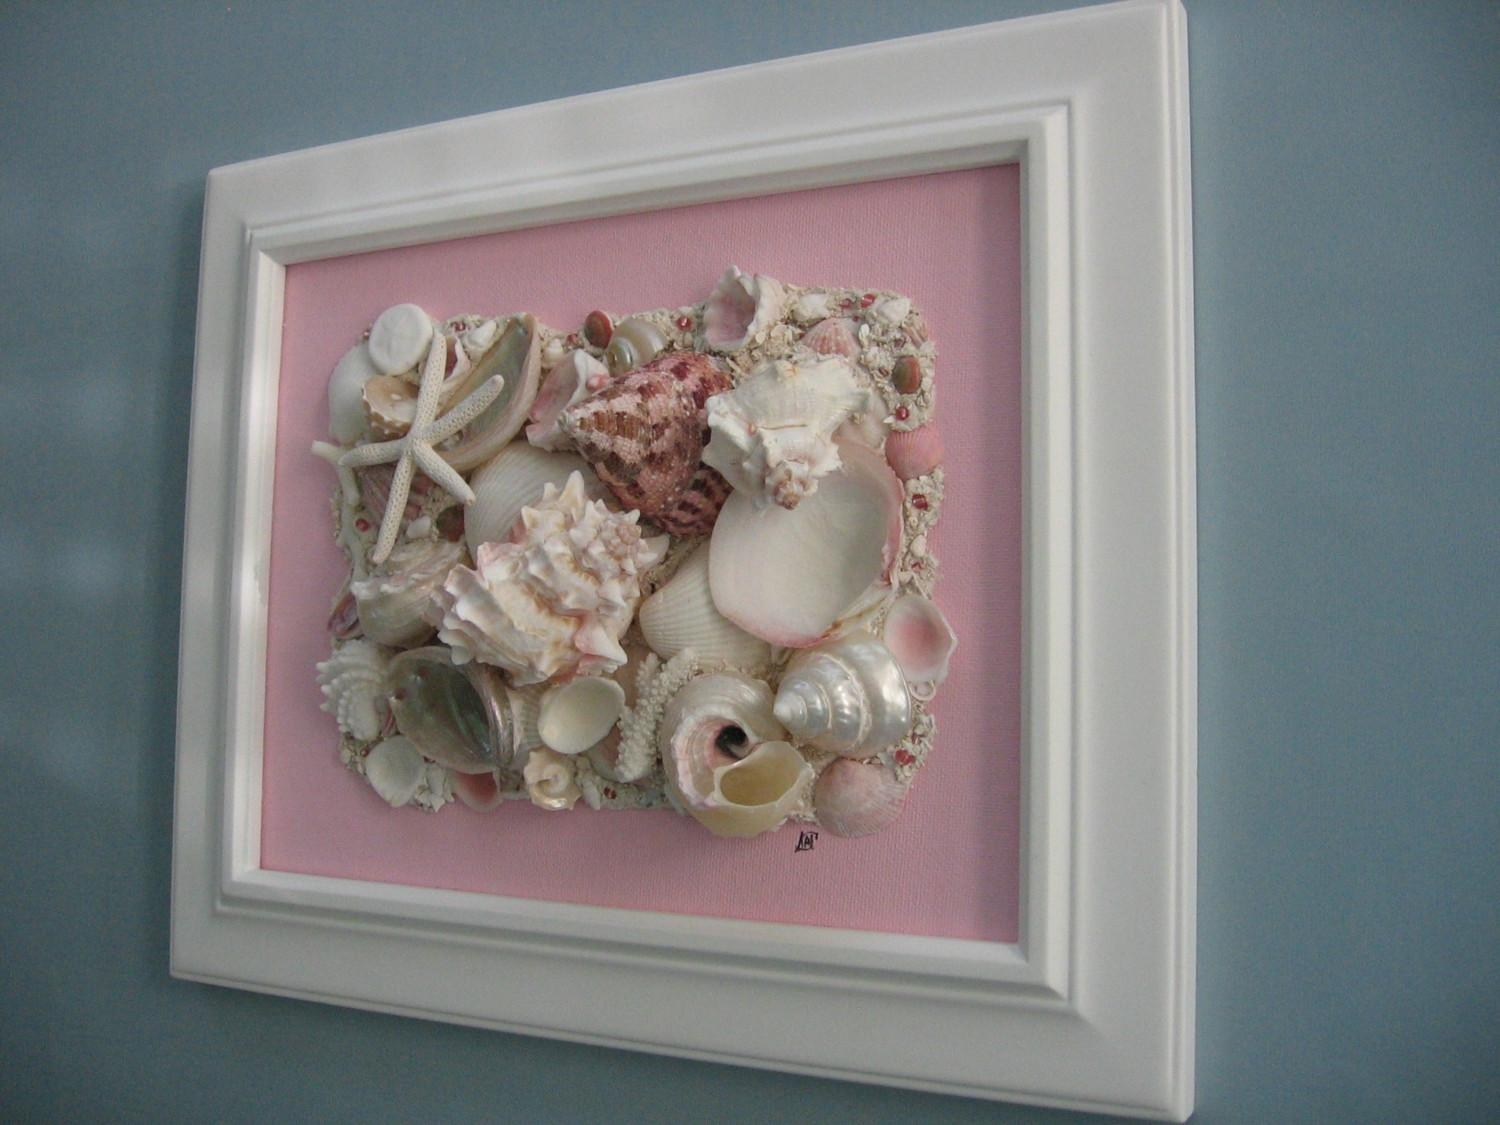 Conventional Art | Imikimiart For Wall Art With Seashells (Image 11 of 20)